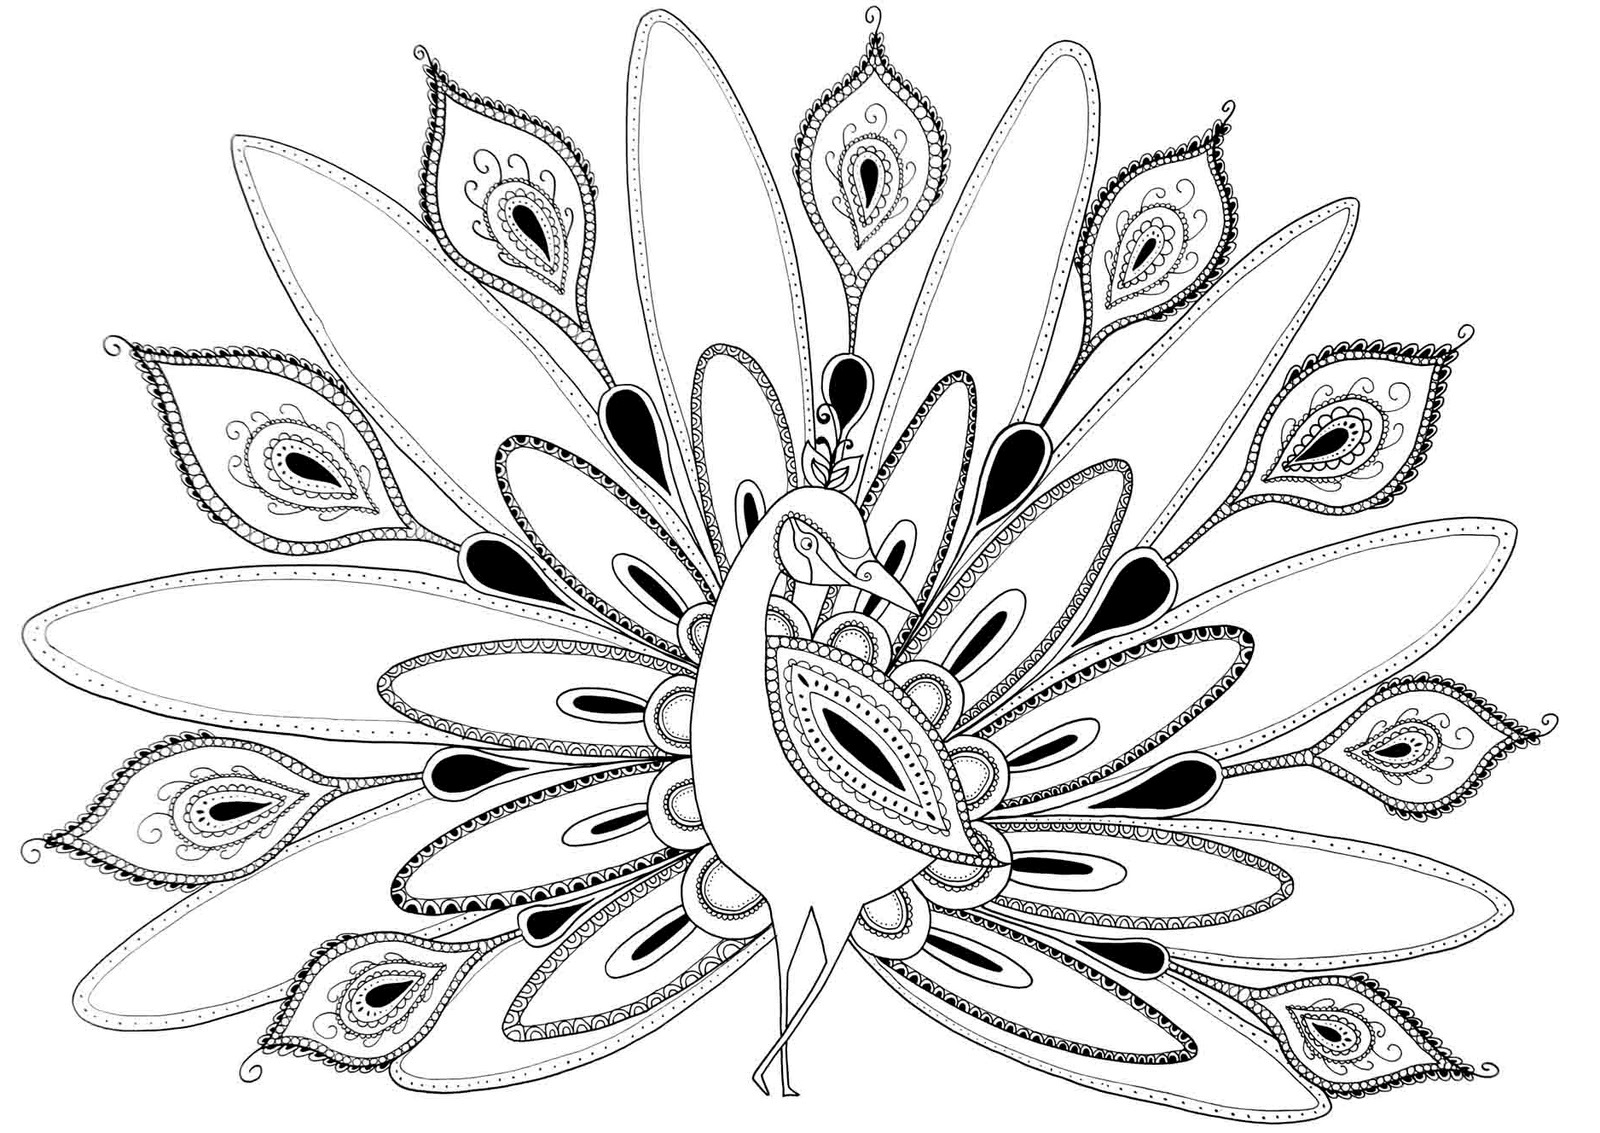 picture of peacock to color peacock beautiful peahen a female peacock coloring page picture to color of peacock